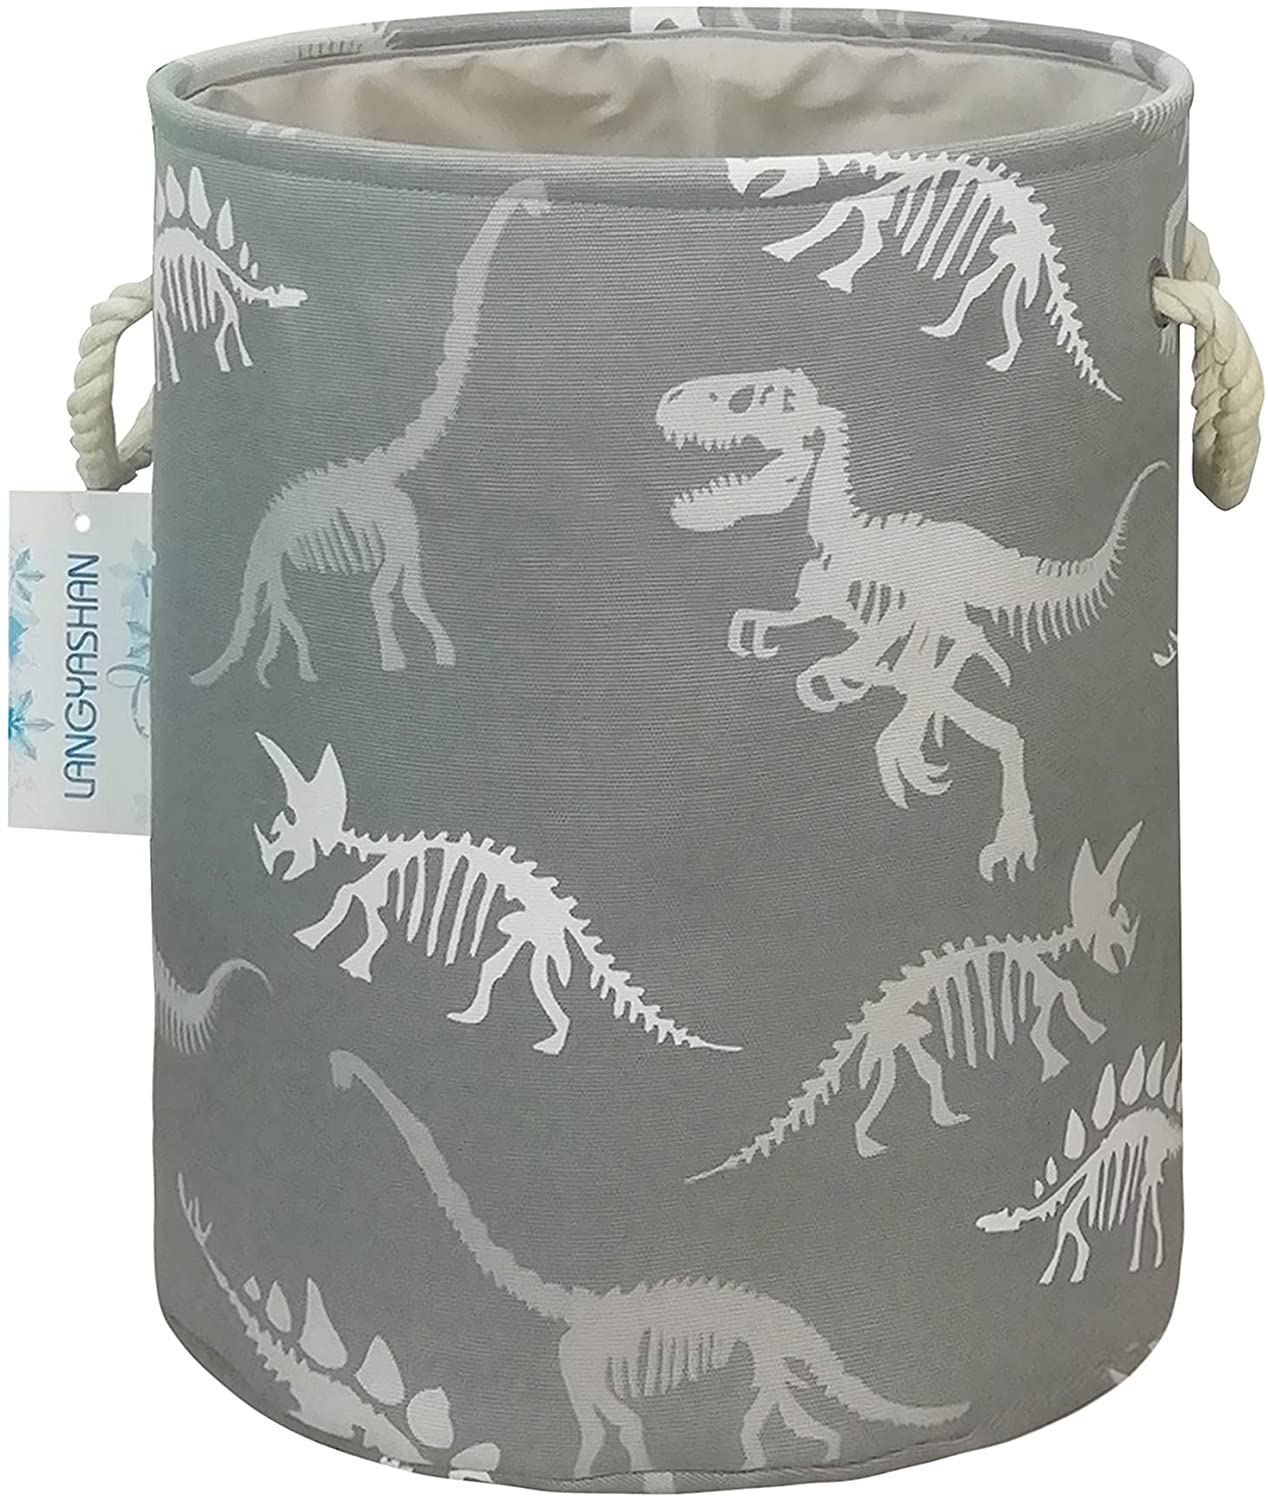 LANGYASHAN Storage Bin, Cotton Collapsible Organizer Basket for Girls Laundry Hamper,Toy Bins,Gift Baskets, Bedroom, Clothes,Baby Nursery (Gray Dinosaur Skeleton)